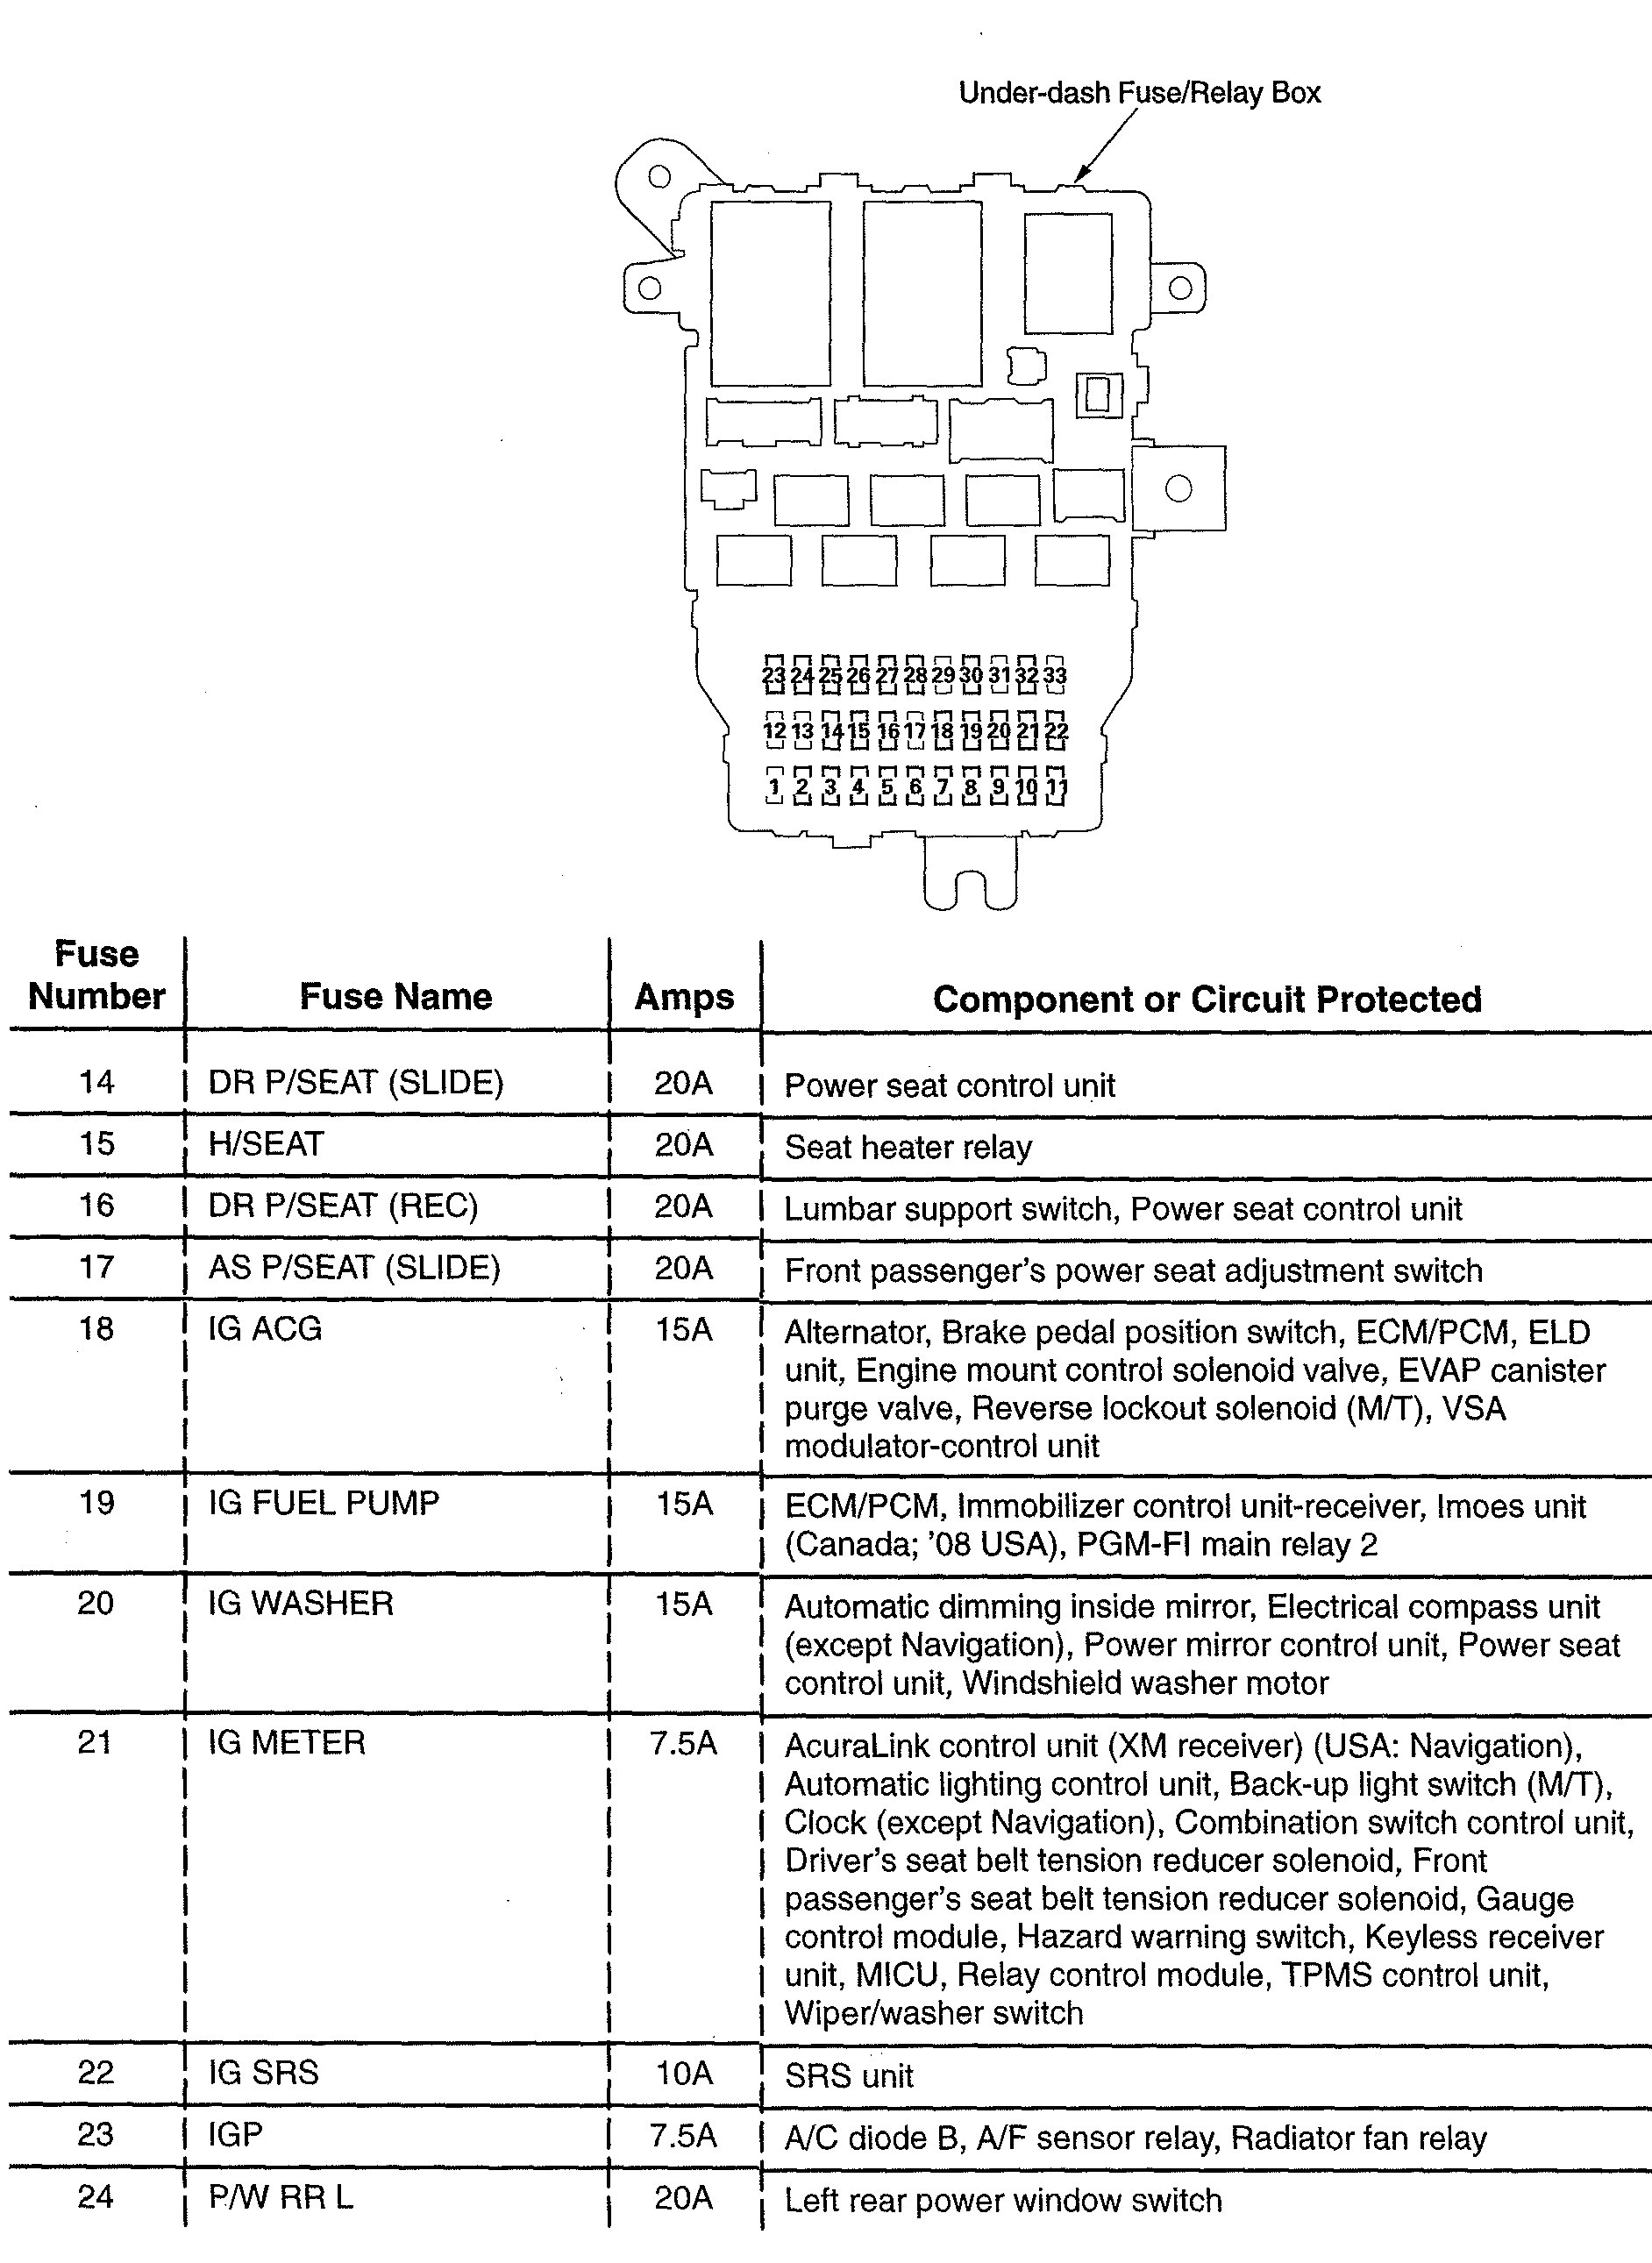 acura tl wiring diagram fuse panel 2 2008 acura tl (2008) wiring diagrams fuse panel carknowledge acura tl wiring diagram at bayanpartner.co